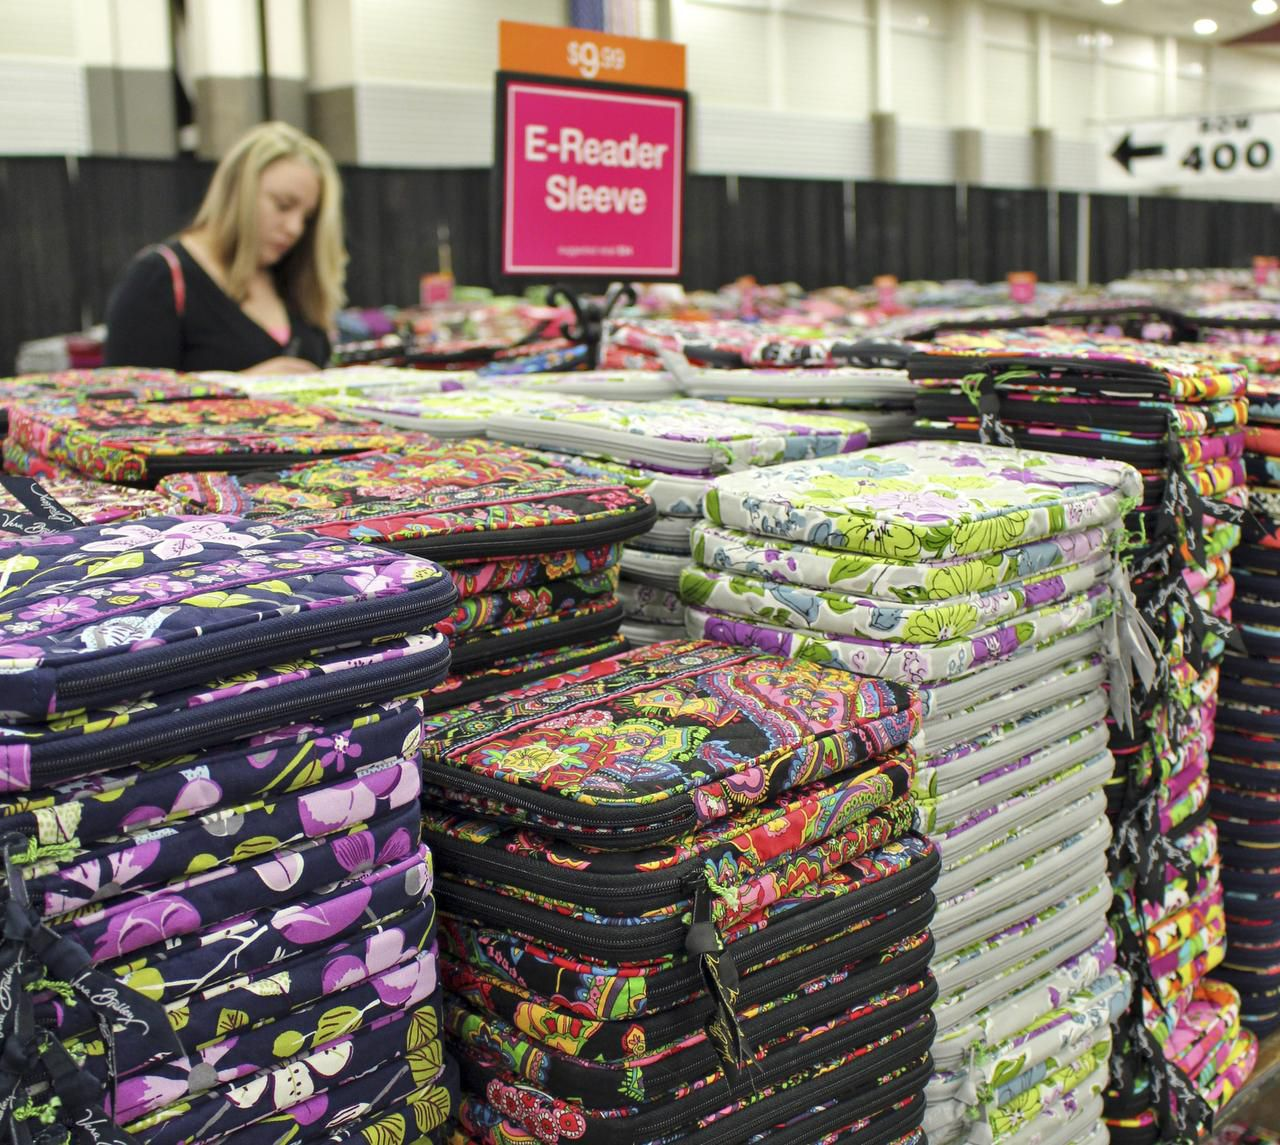 19. E-reader sleeves at the Vera Bradley outlet sale. (one long cutline for all three photos above and the large photo below. It's all the sam stuf... right?_Douglas